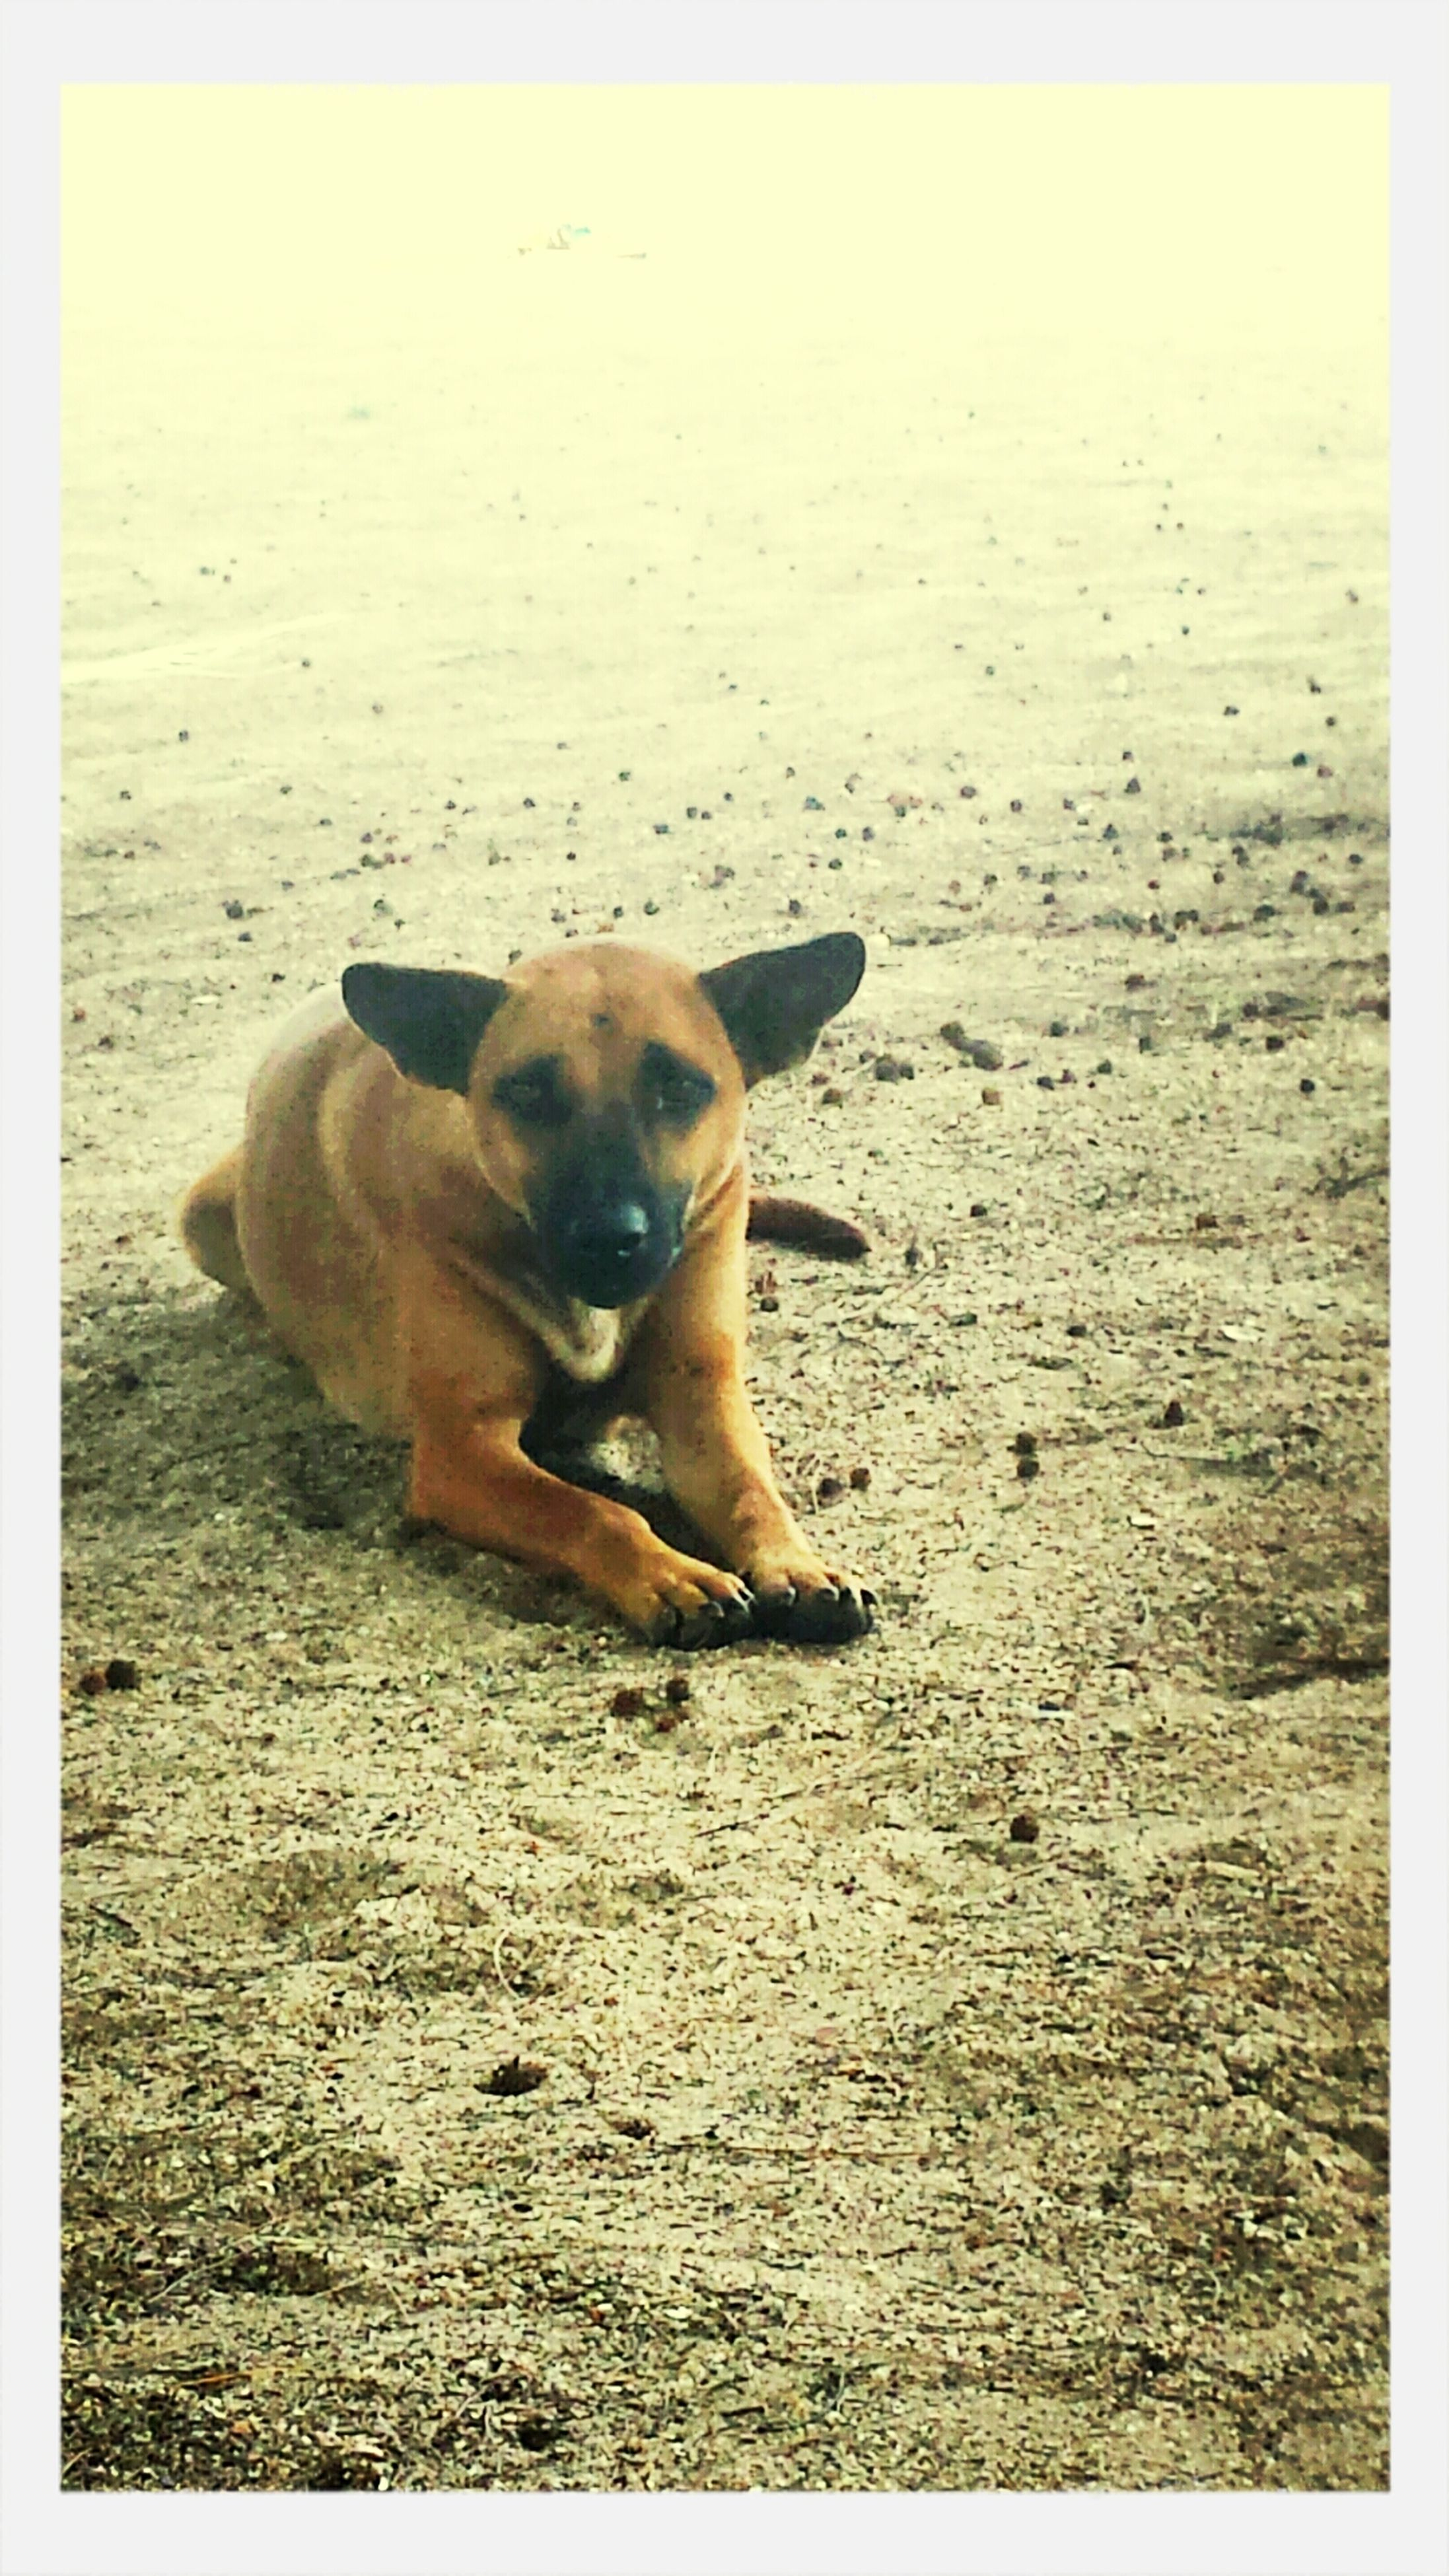 dog, animal themes, one animal, sand, beach, domestic animals, pets, mammal, transfer print, auto post production filter, shore, nature, full length, relaxation, sea, sunlight, tranquility, outdoors, tranquil scene, day